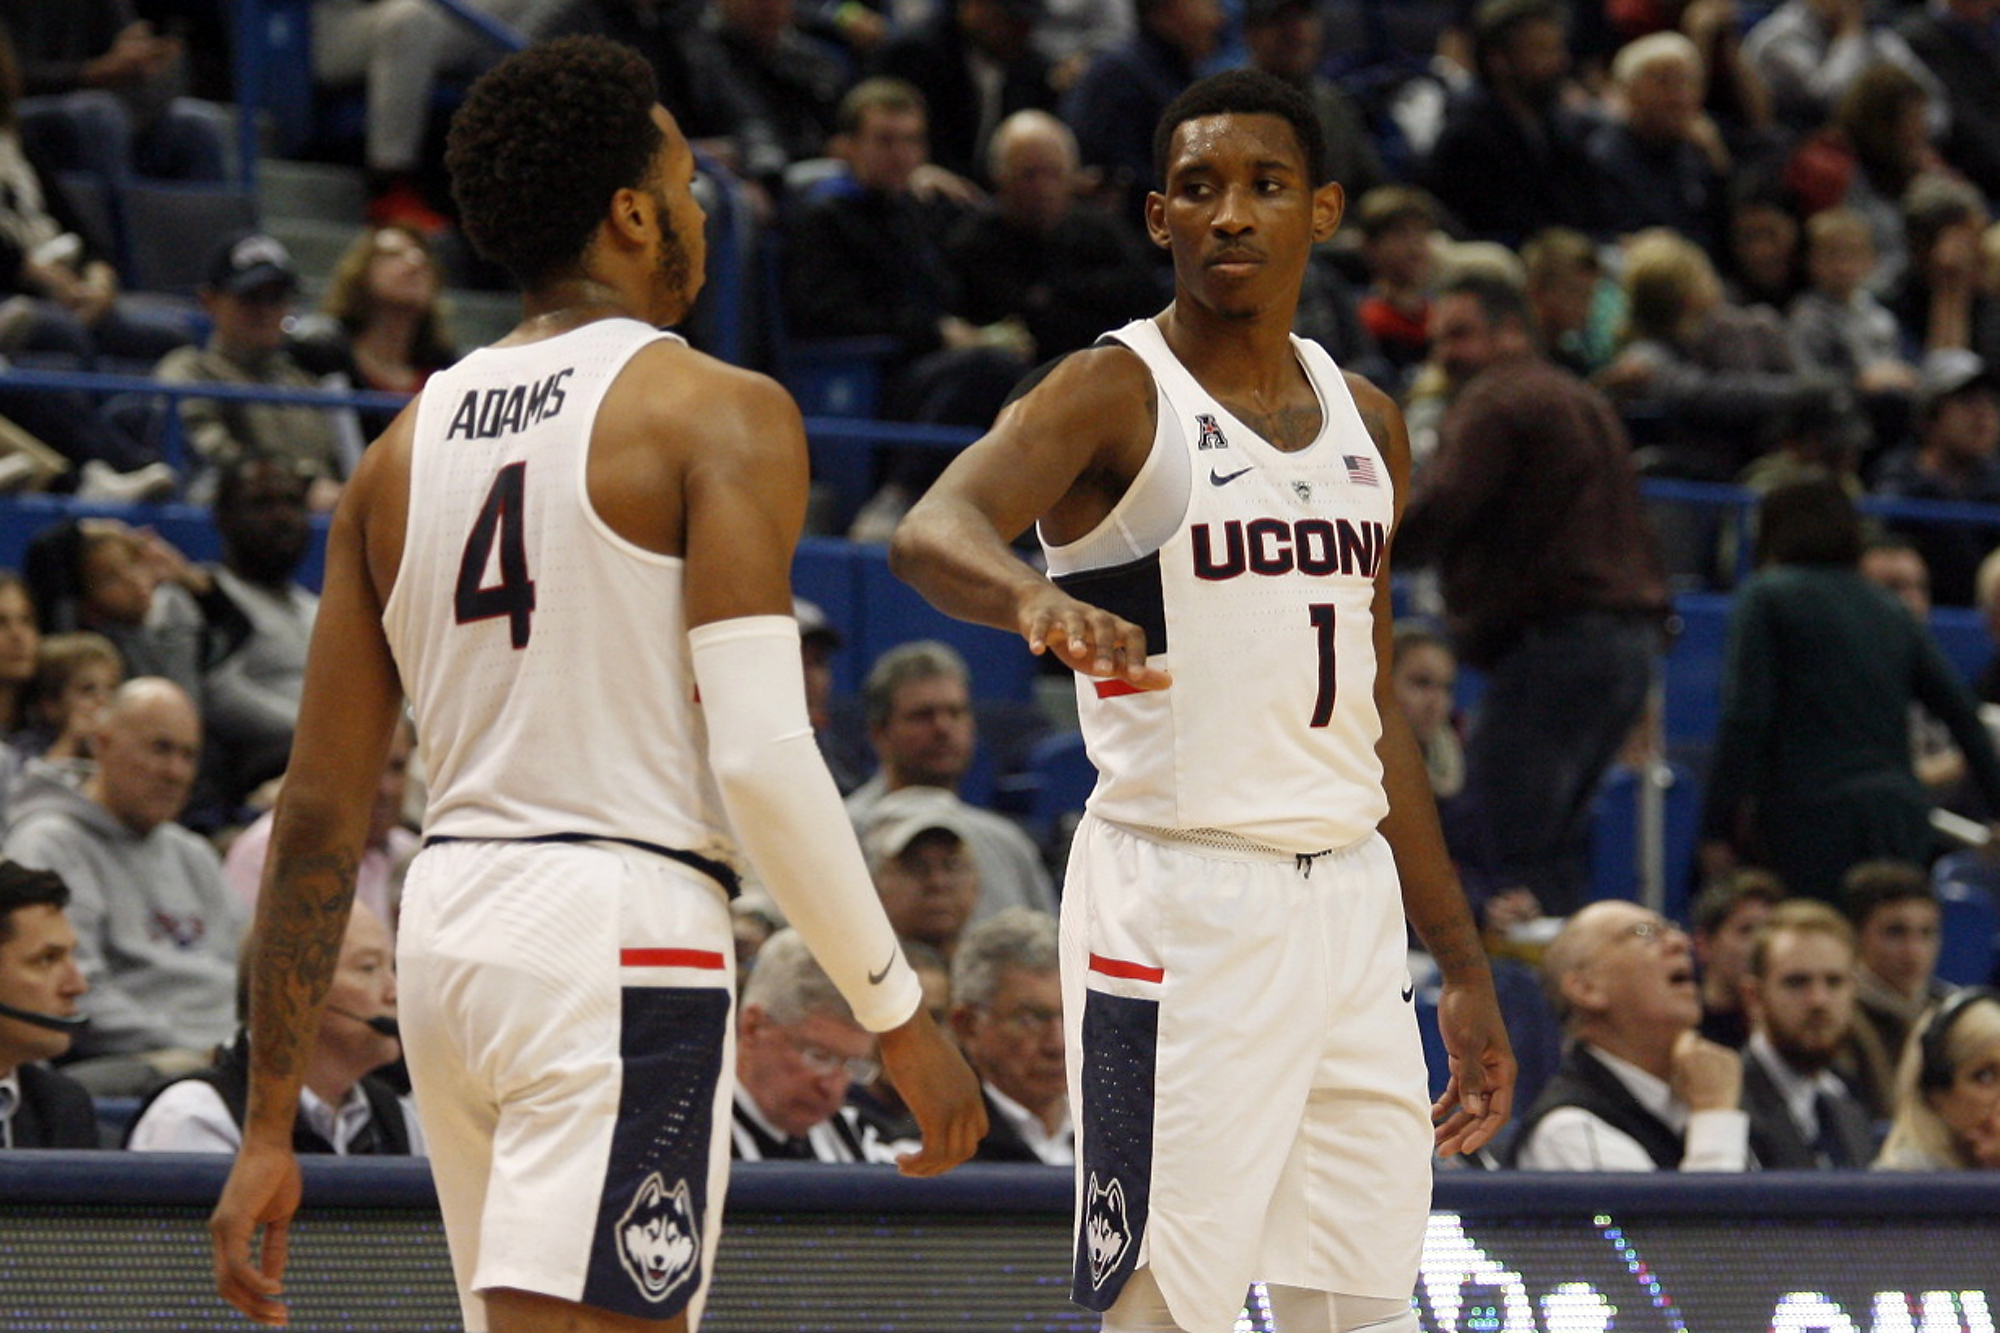 UConn's Christian Vital (1) and Jalen Adams (4) during the Monmouth Hawks vs UConn Huskies men's college basketball game at the XL Center in Hartford, CT on December 2, 2017.